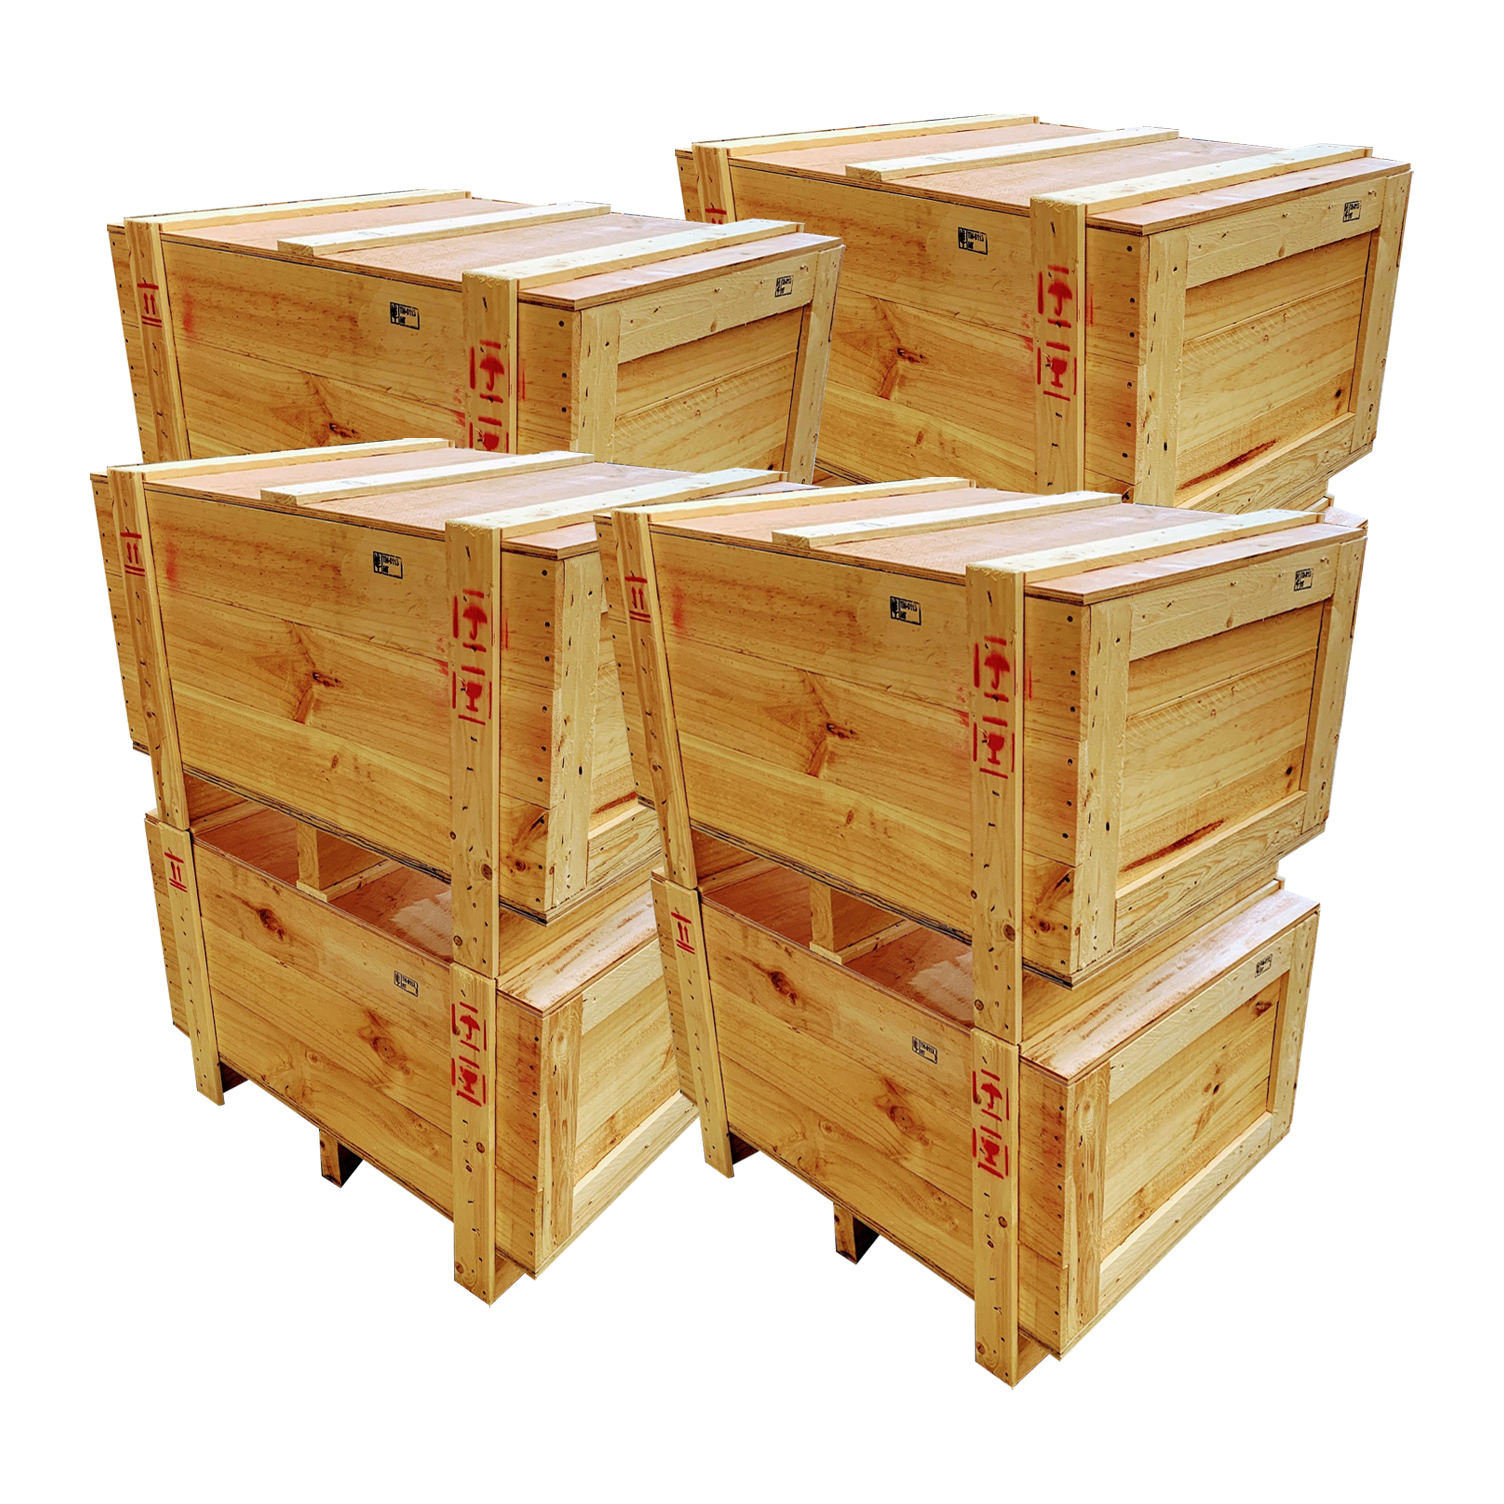 Top Selling Good Price pine wood packaging boxes made from Thailand